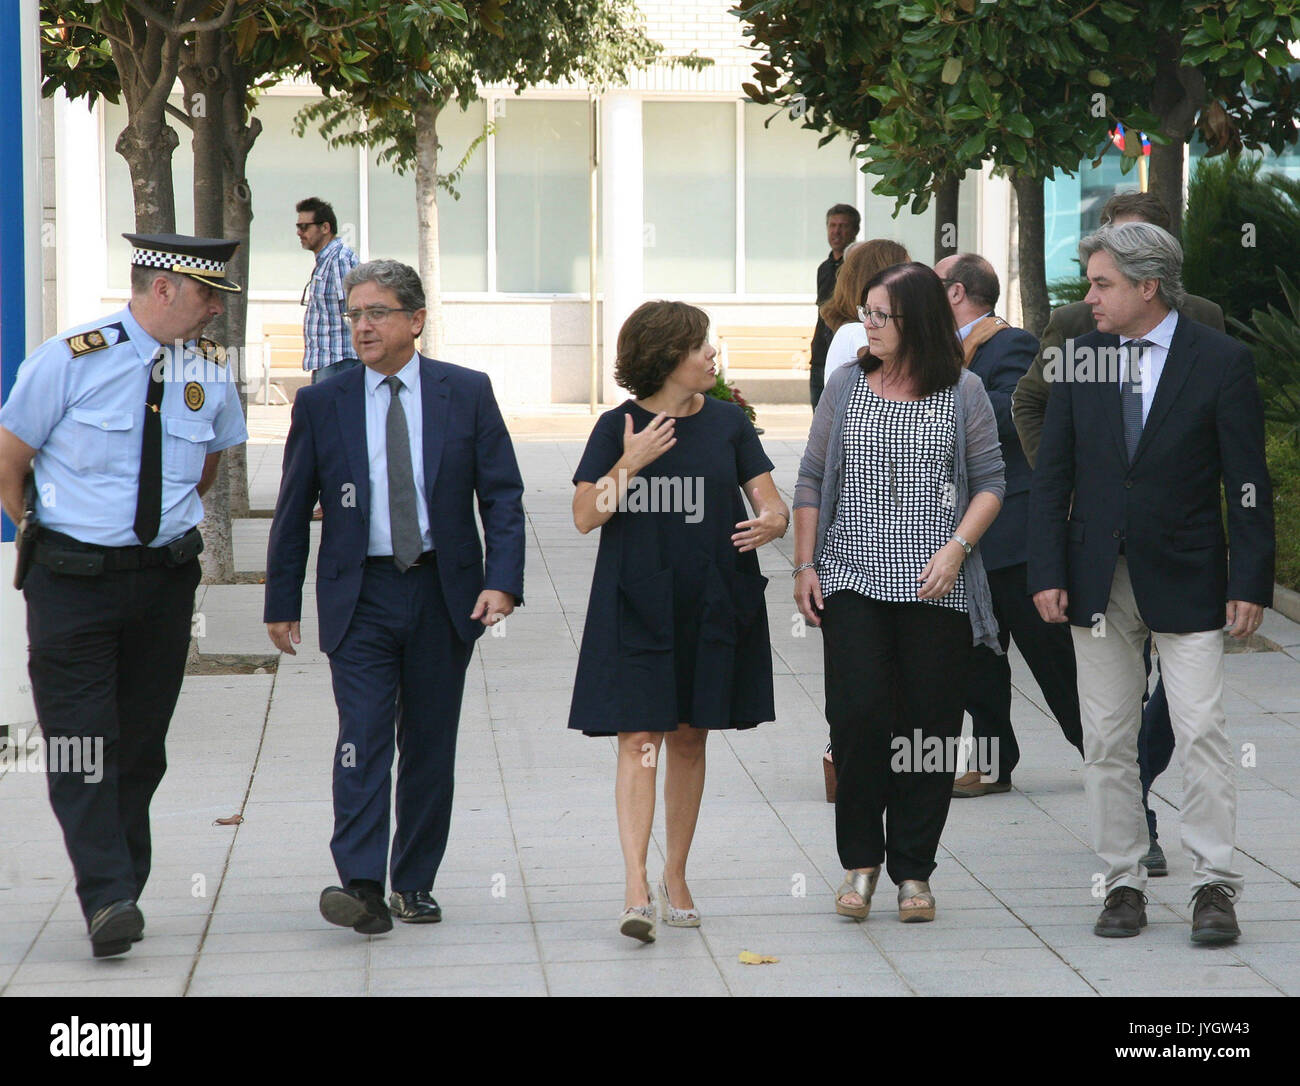 Spanish Deputy Prime Minister Soraya Saenz de Santamaria (C) visits the site of the terrorist attack, in Cambrils, Spain, 19 August 2017. At least 14 people have died and 130 were injured when a van crashed into pedestrians in Las Ramblas, downtown Barcelona in an incident which Spanish police are treating as a terror attack. Similar attack was conducted in coastal city of Cambrils, where five alleged terrorists, who apparently wore bomb belts, were shot dead by security forces on early morning 18 August after they attacked pedestrians using a vehicle next to a promenade, killing one and injur - Stock Image